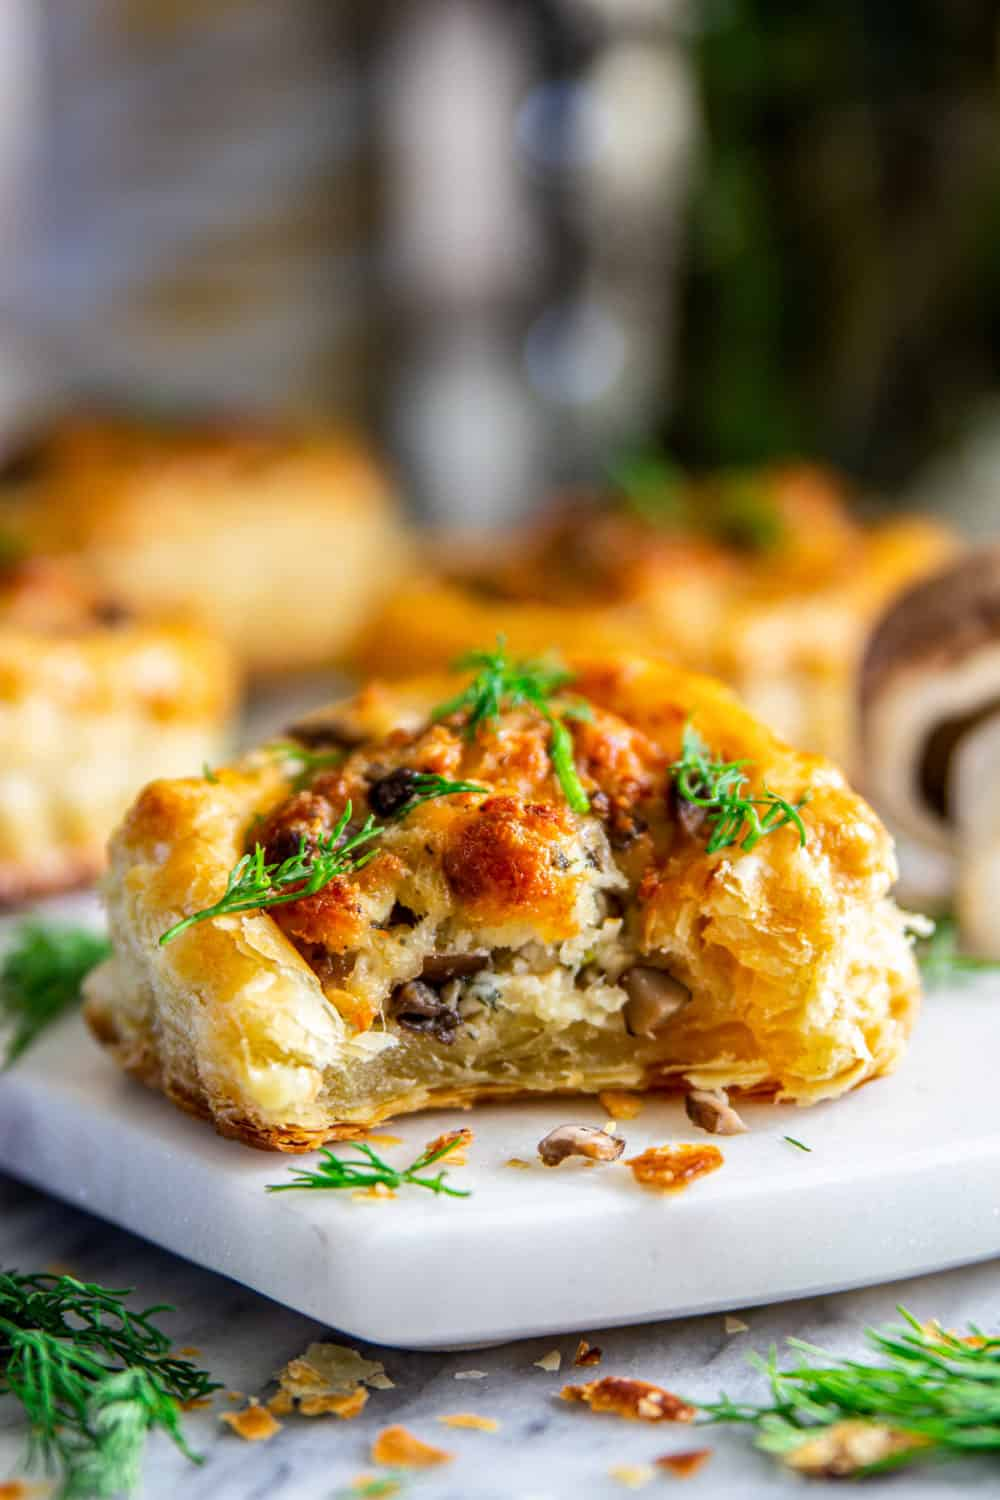 Mushroom Puff Pastry appetizer with more in the background.